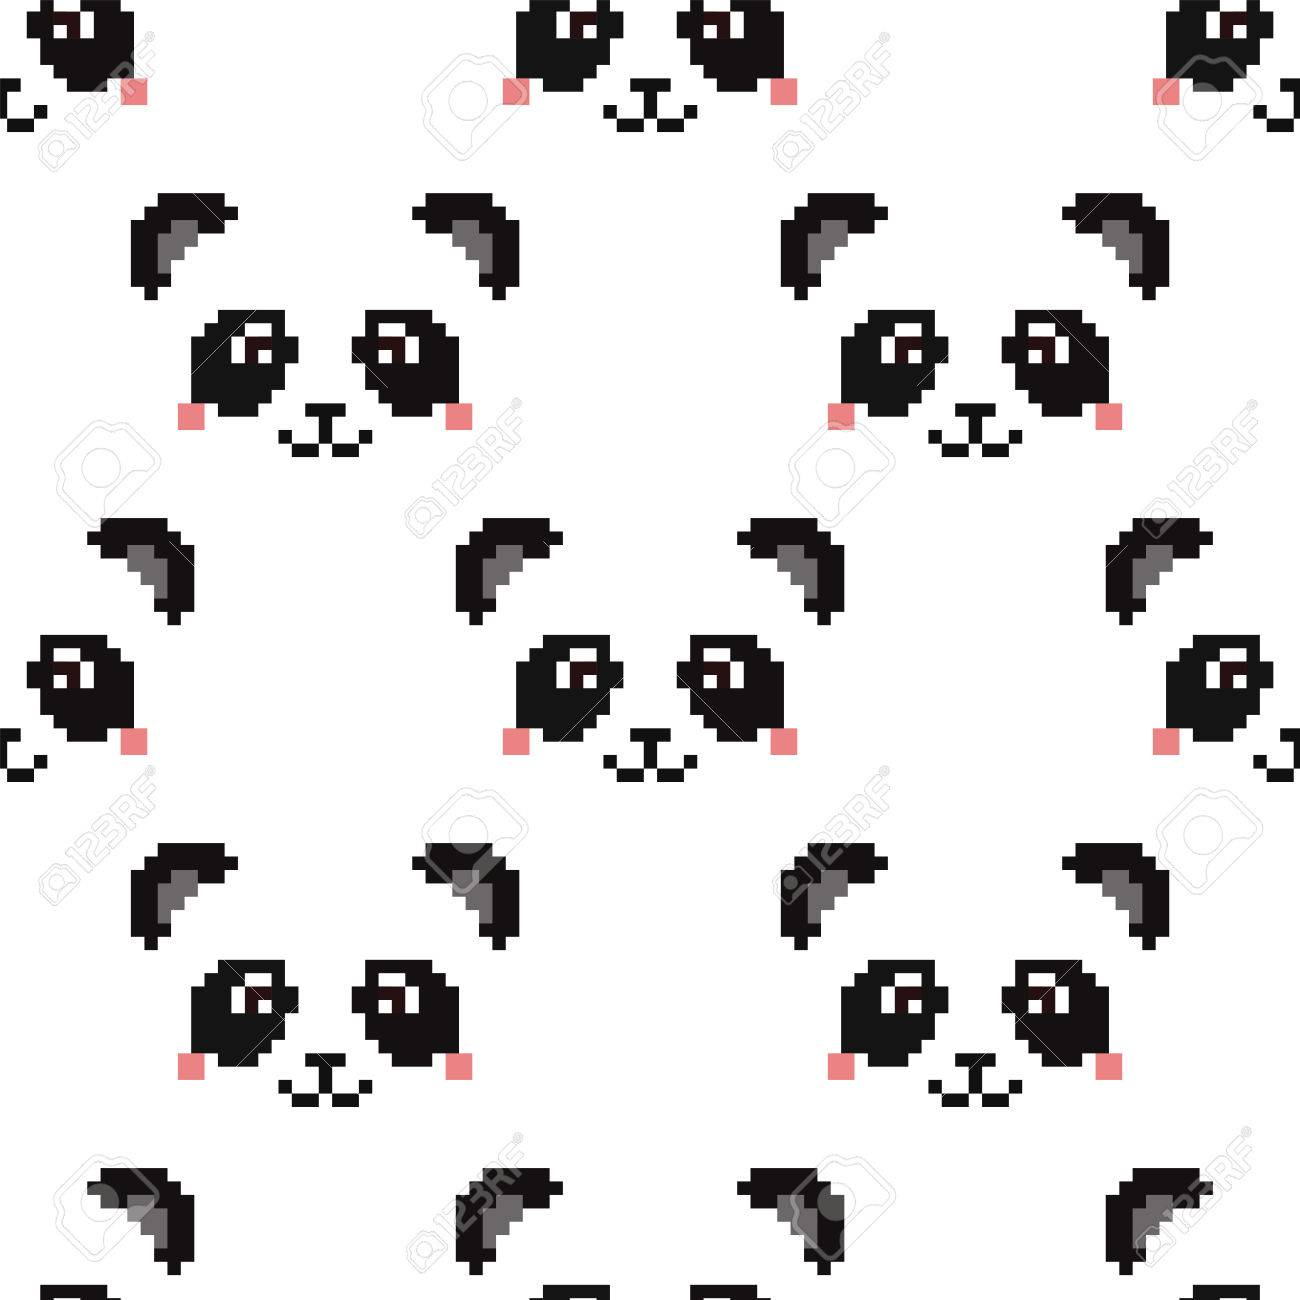 Cute Panda Face Wallpaper Pixel Art Stock Vector